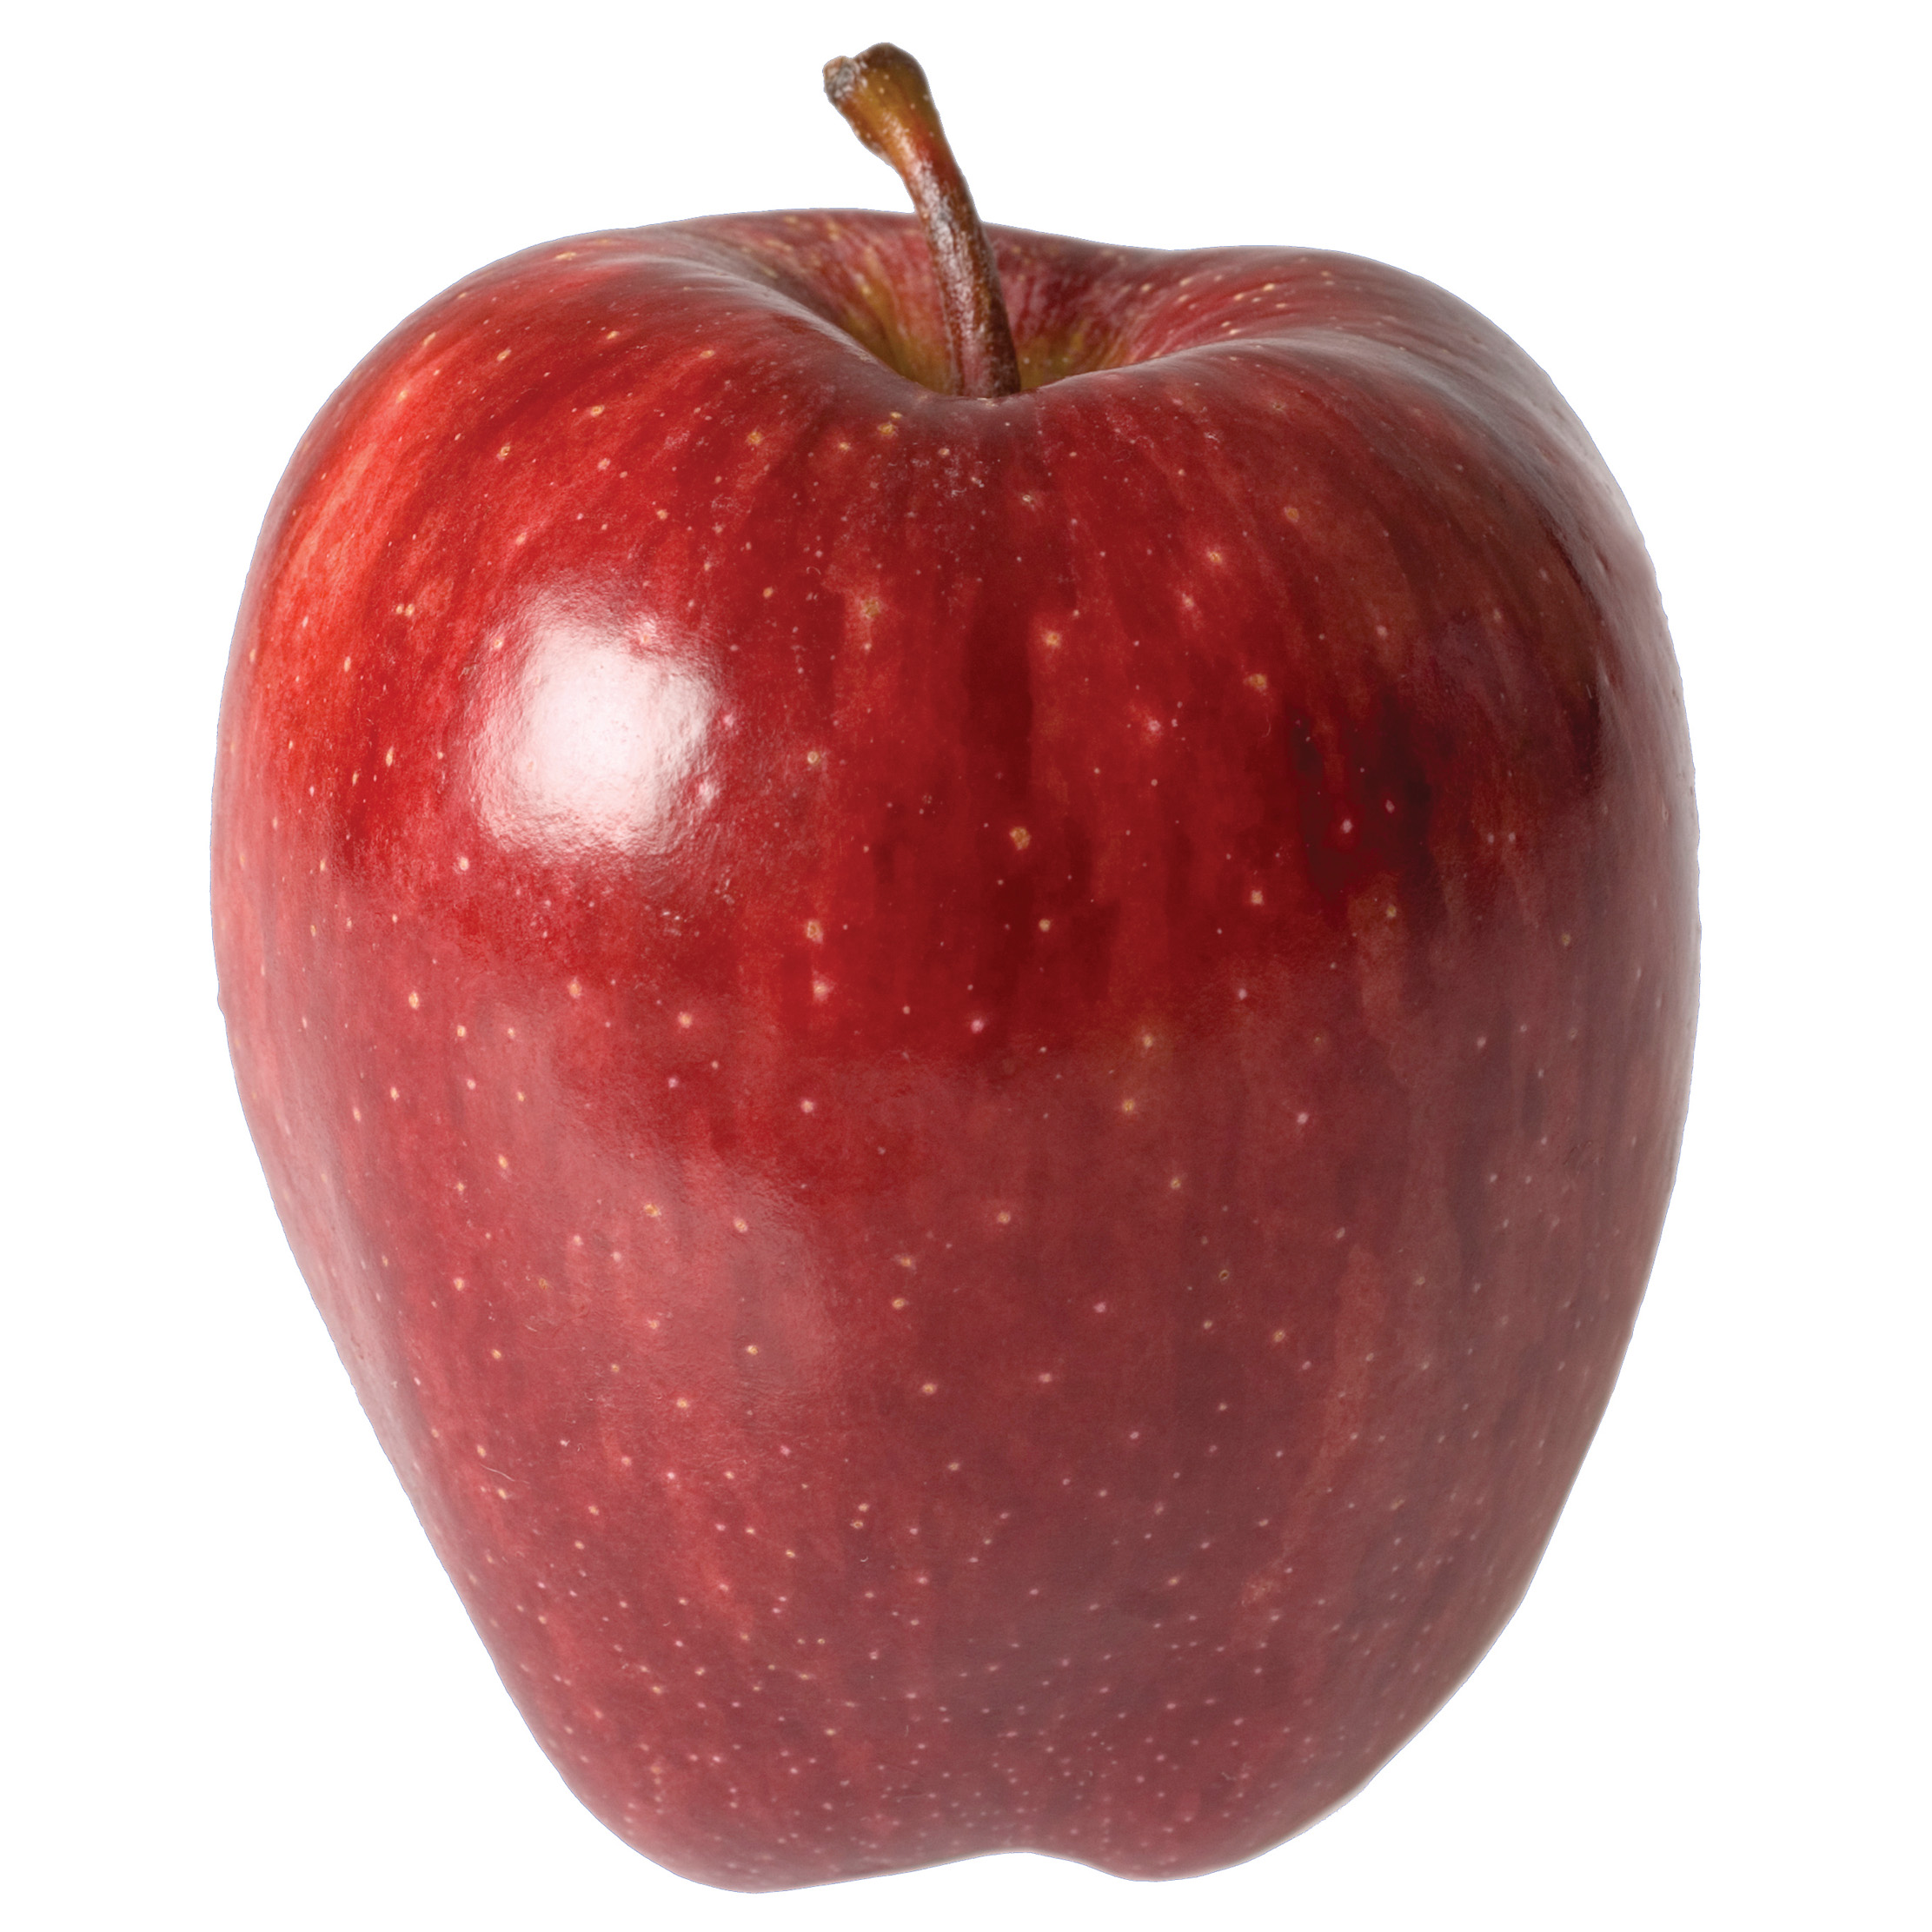 Antioxidant Tuesdays-Red Delicious Apples ...